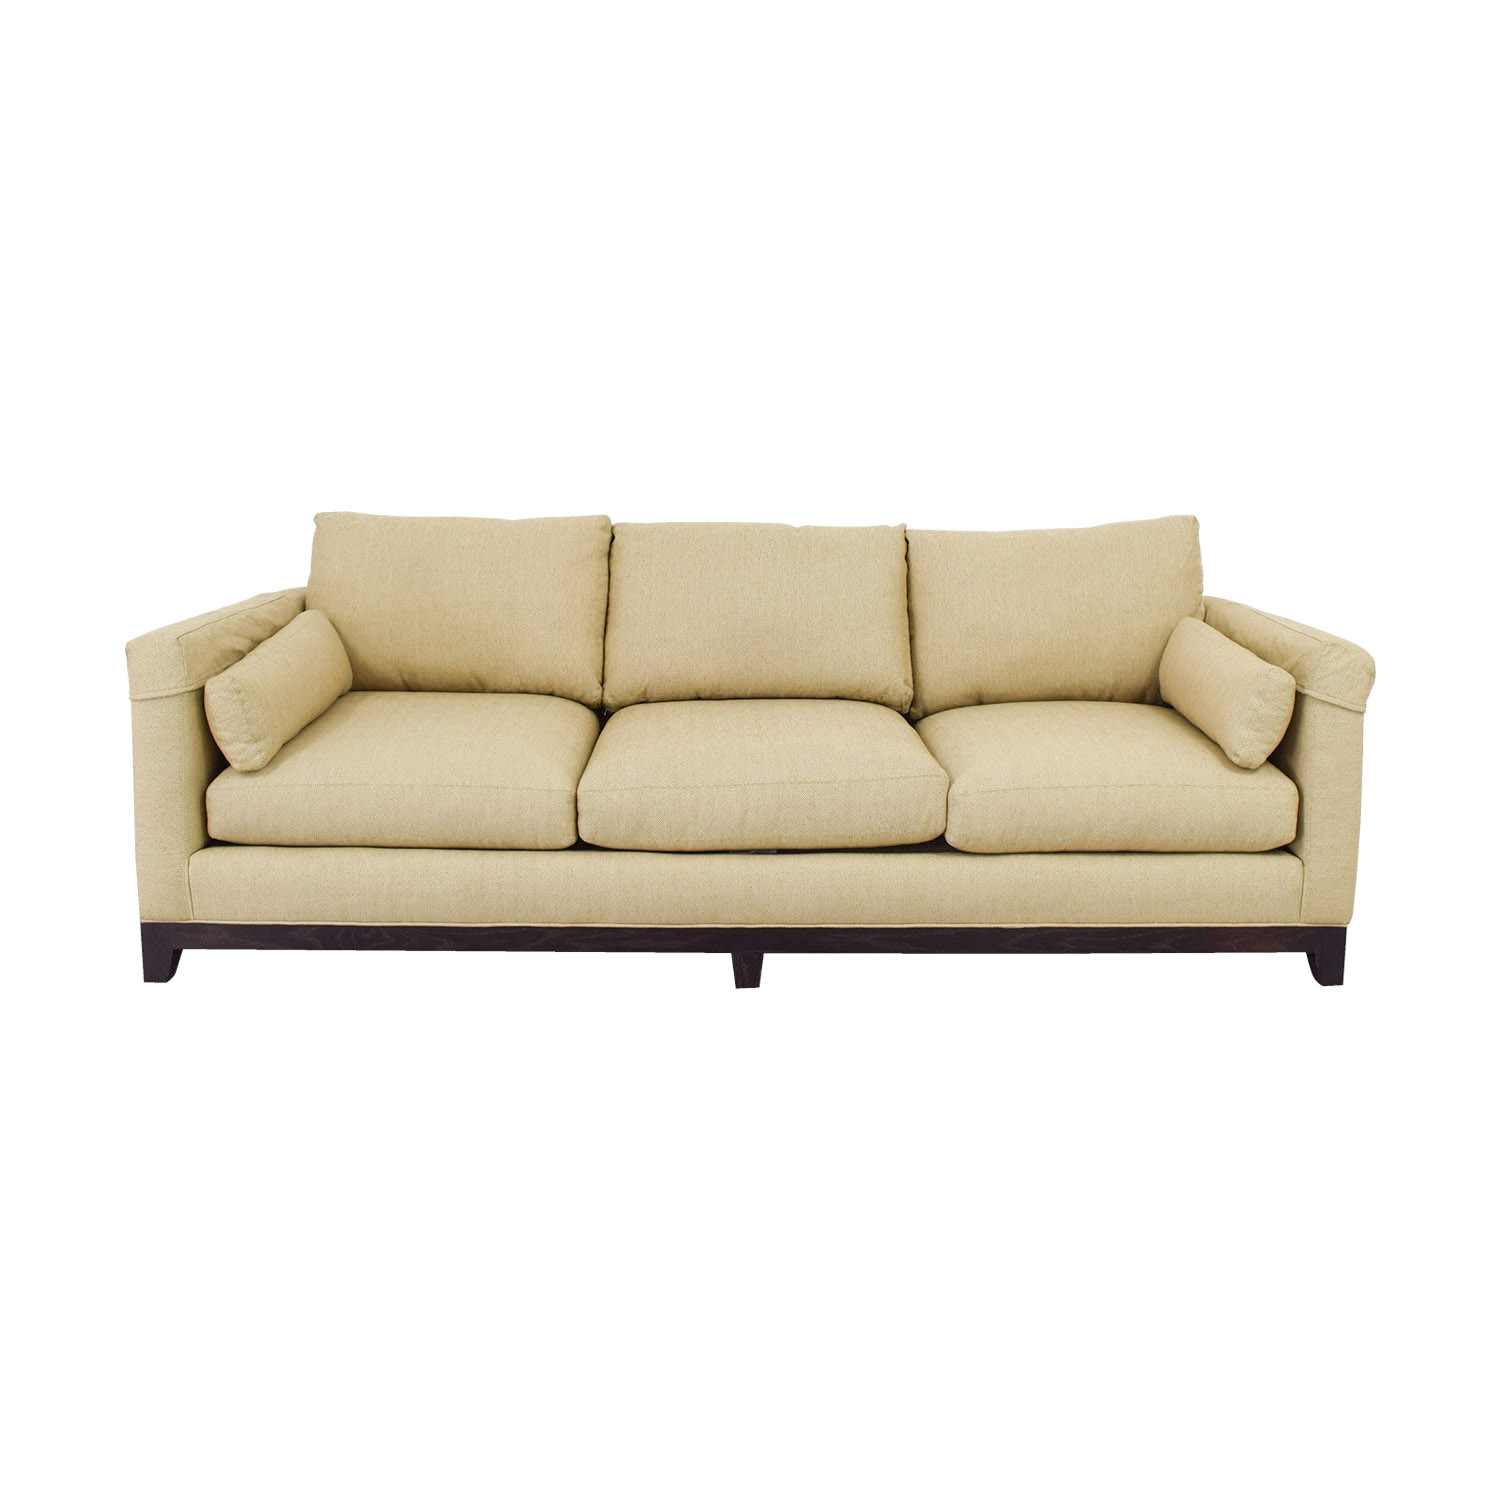 Lee Industries Tan Three-Cushion Sofa Lee Industries